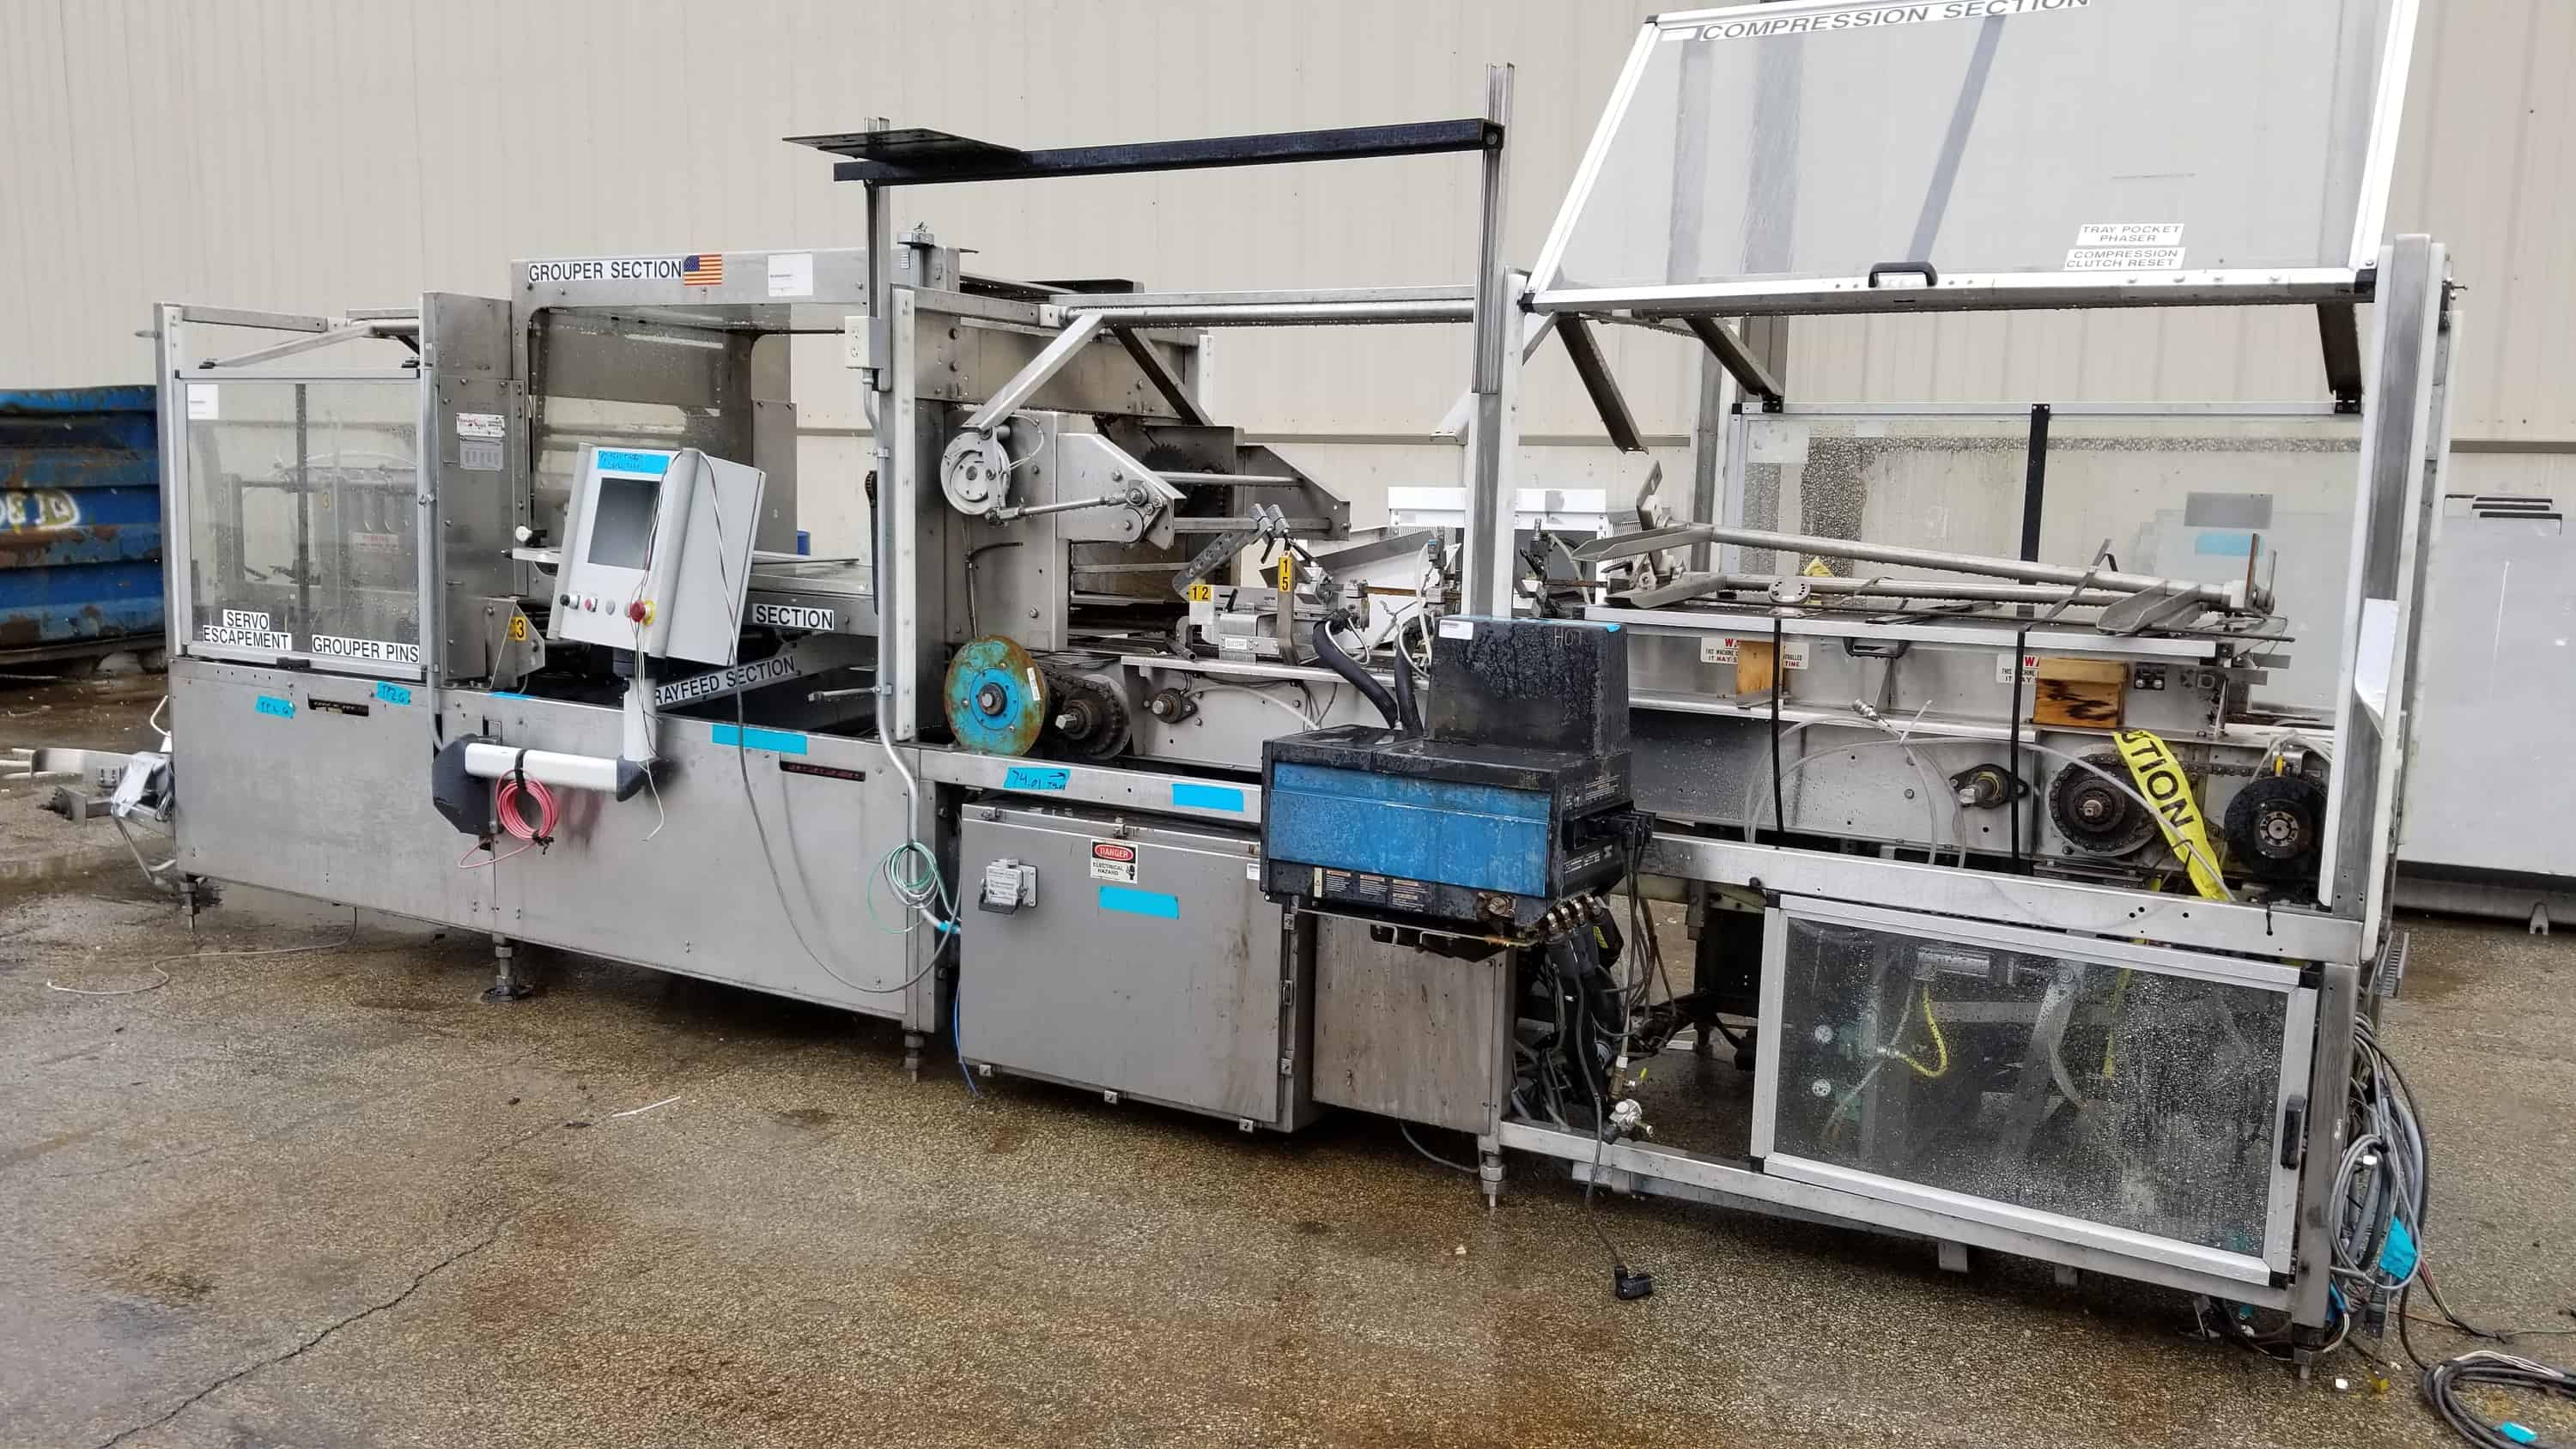 Standard Knapp S/S Tray Packer, Model CONTINUUM, S/N 296i-031, with Nordson Hot Melt Gluer, (Note: Missing Display), (Located Outside Main Packaging Area)